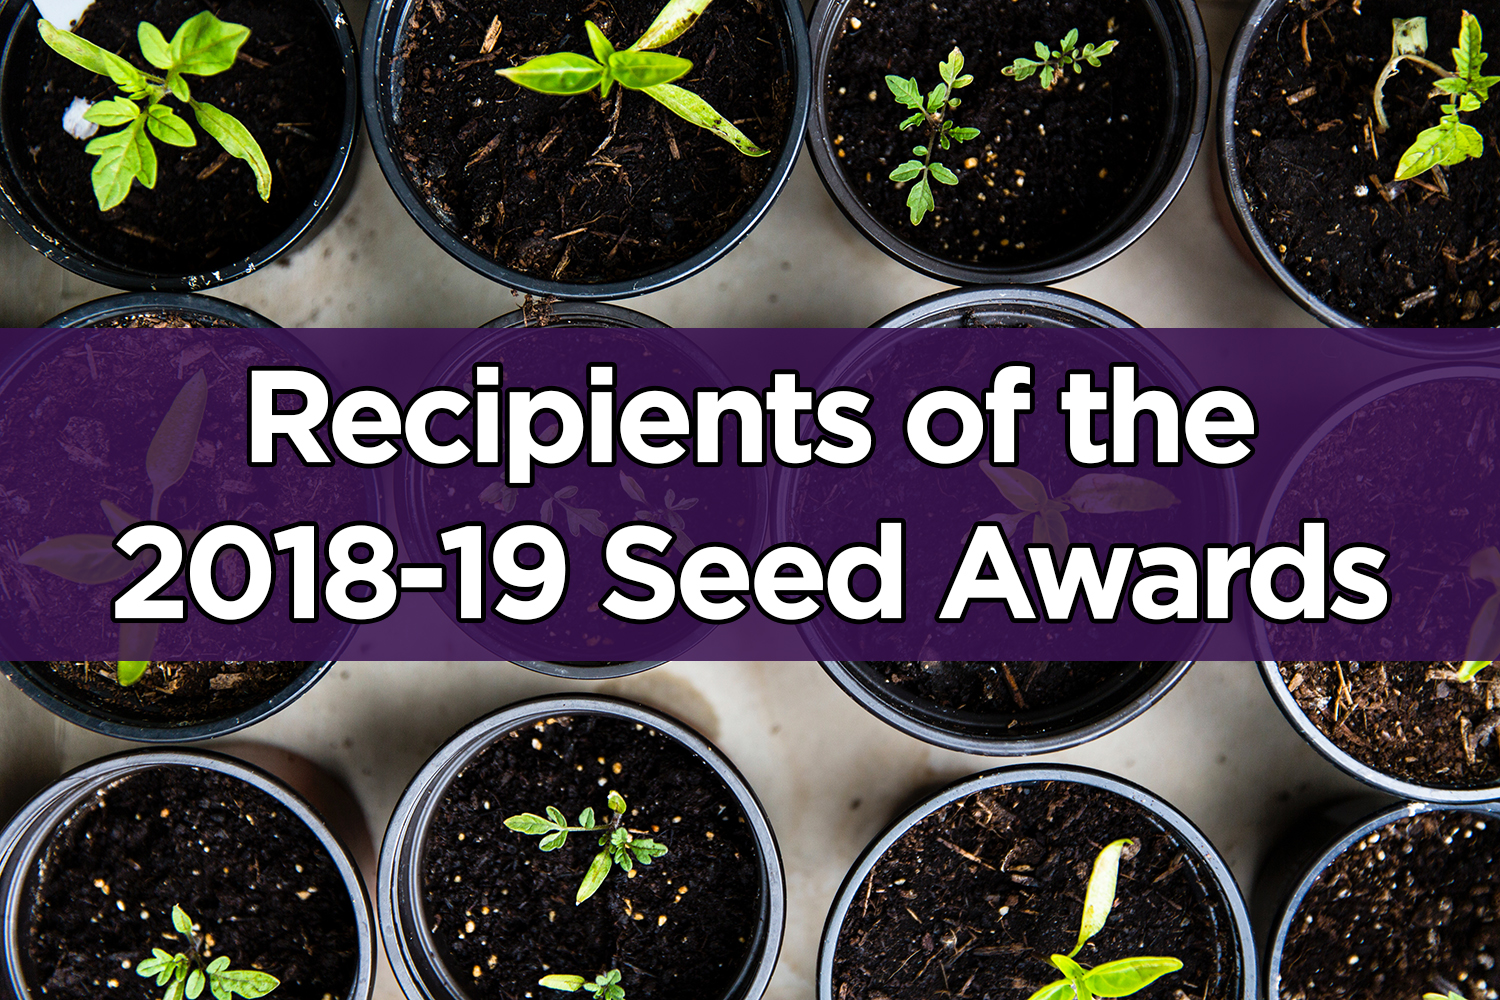 Dr. Brito is a 2018-2019 IHDSC Seed Award Recipient!